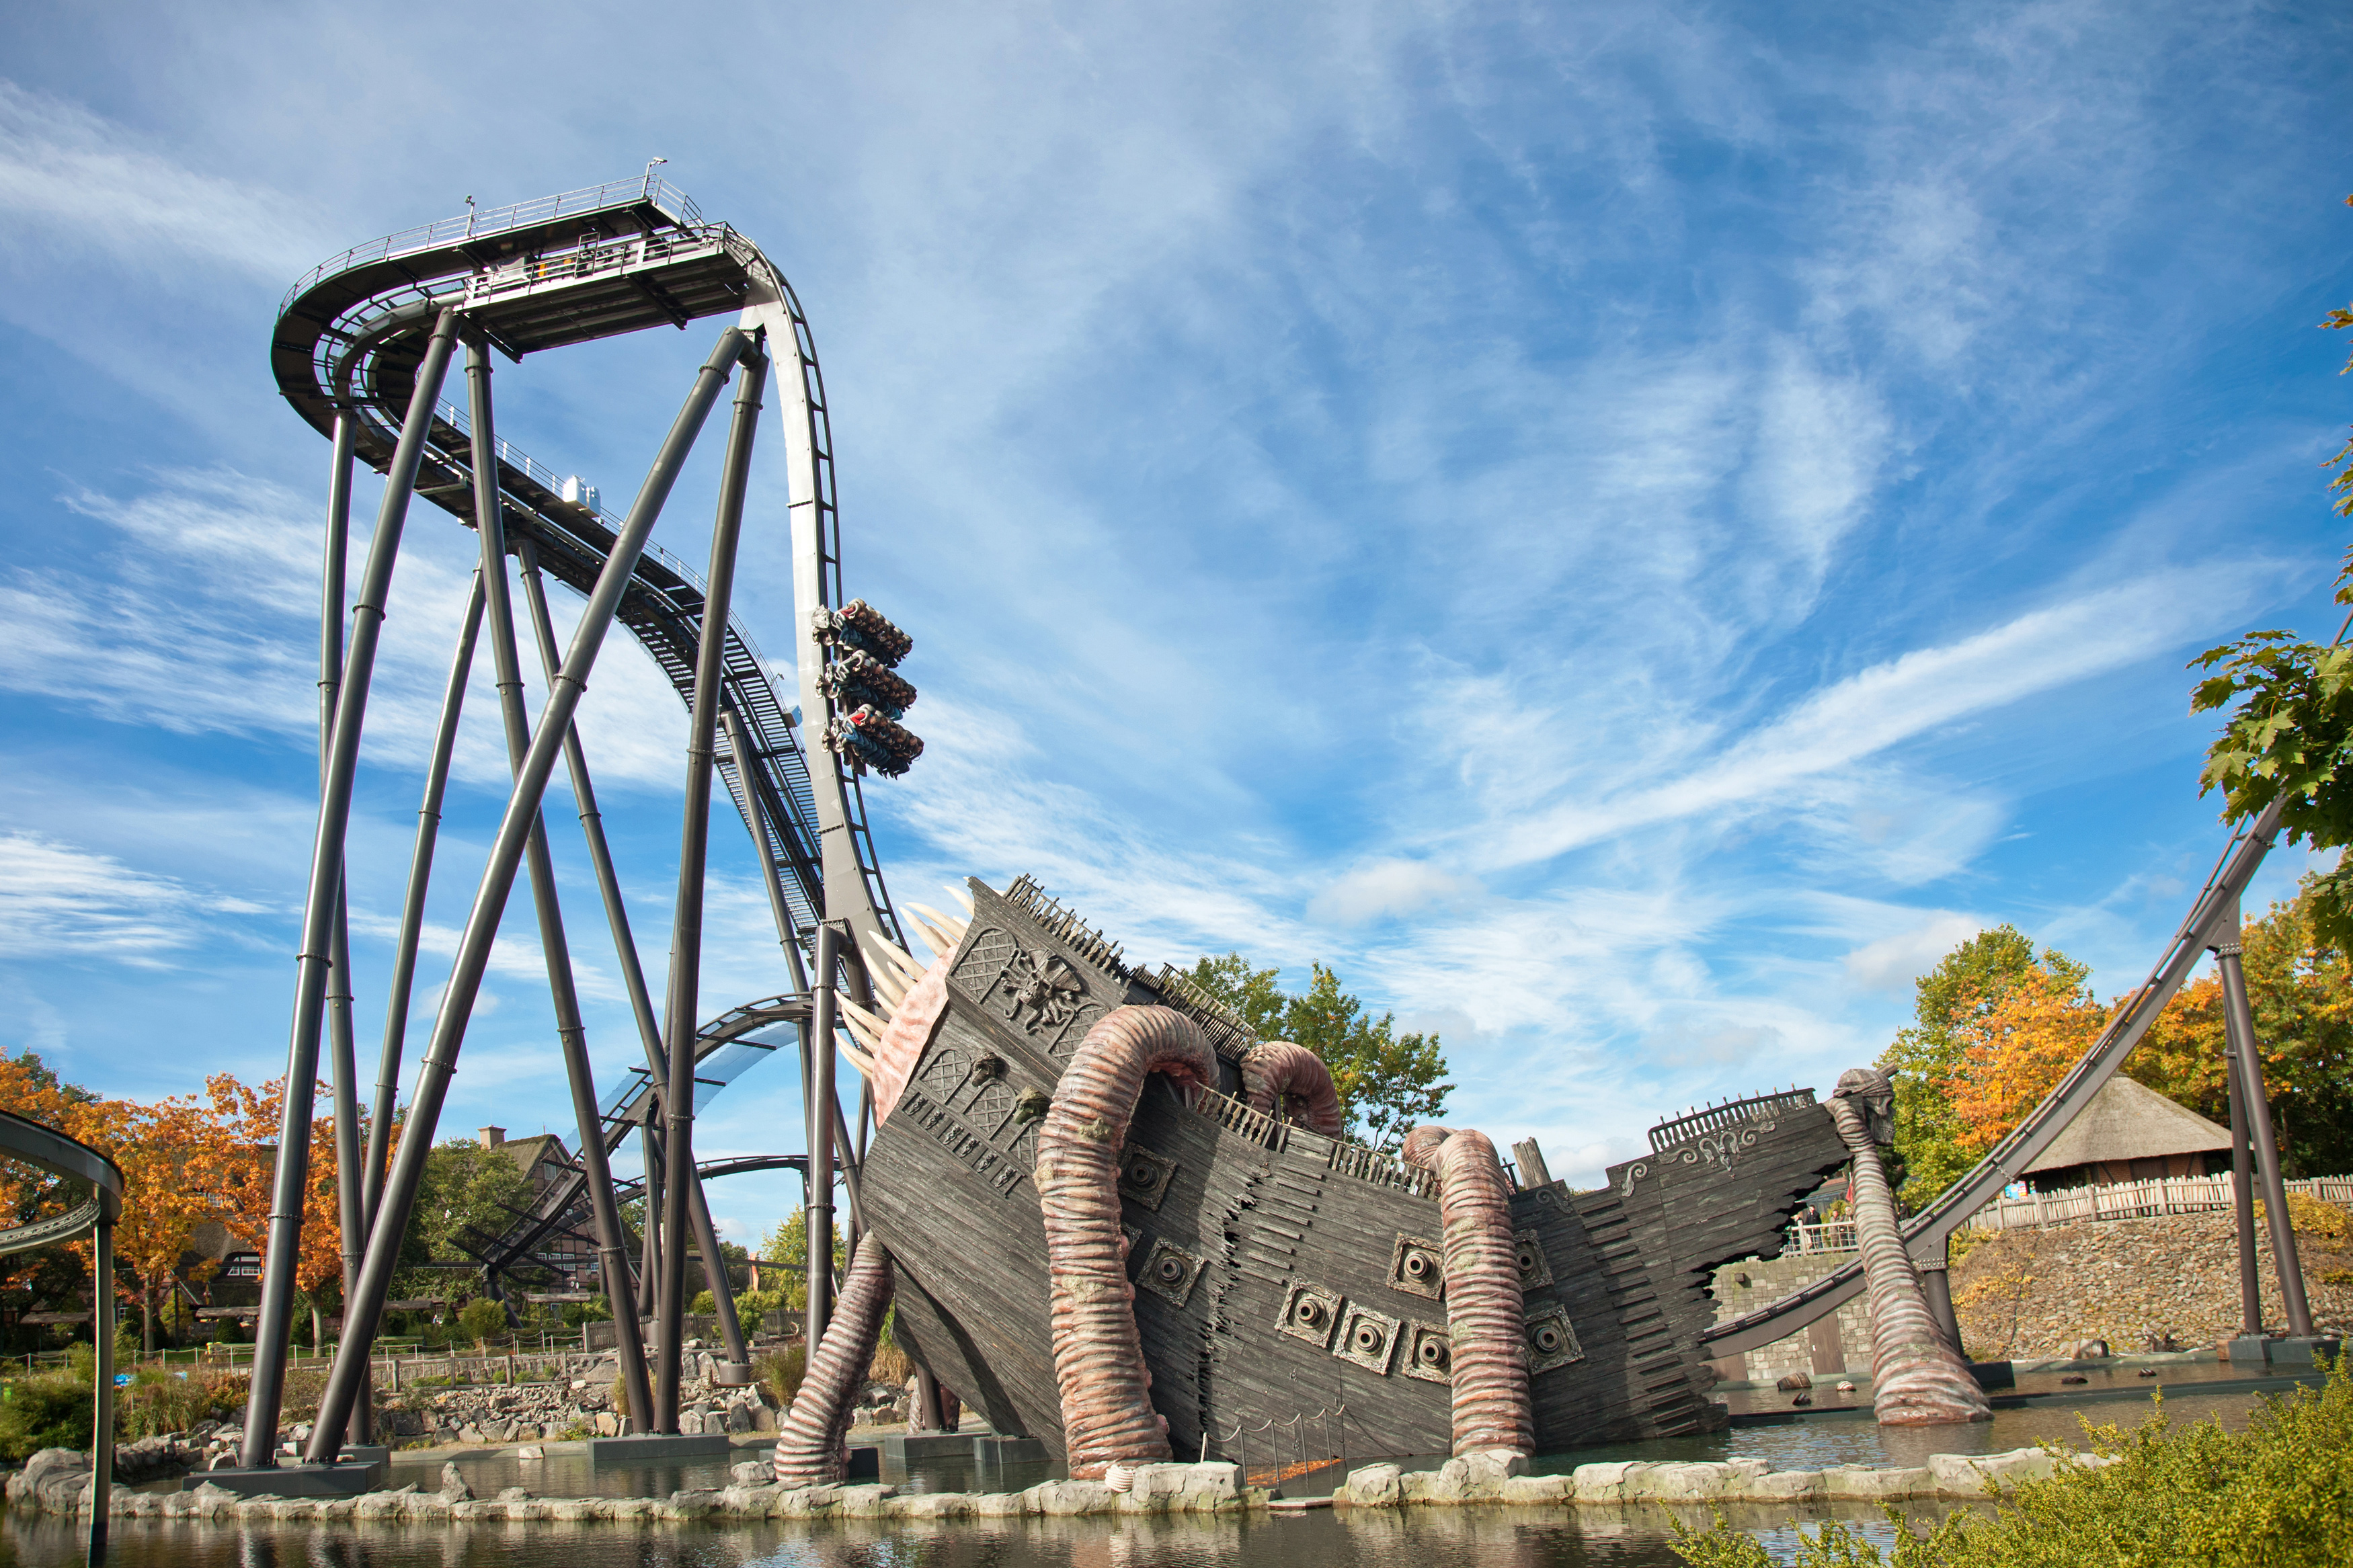 Heide Park Resort Attraktion KRAKE 1